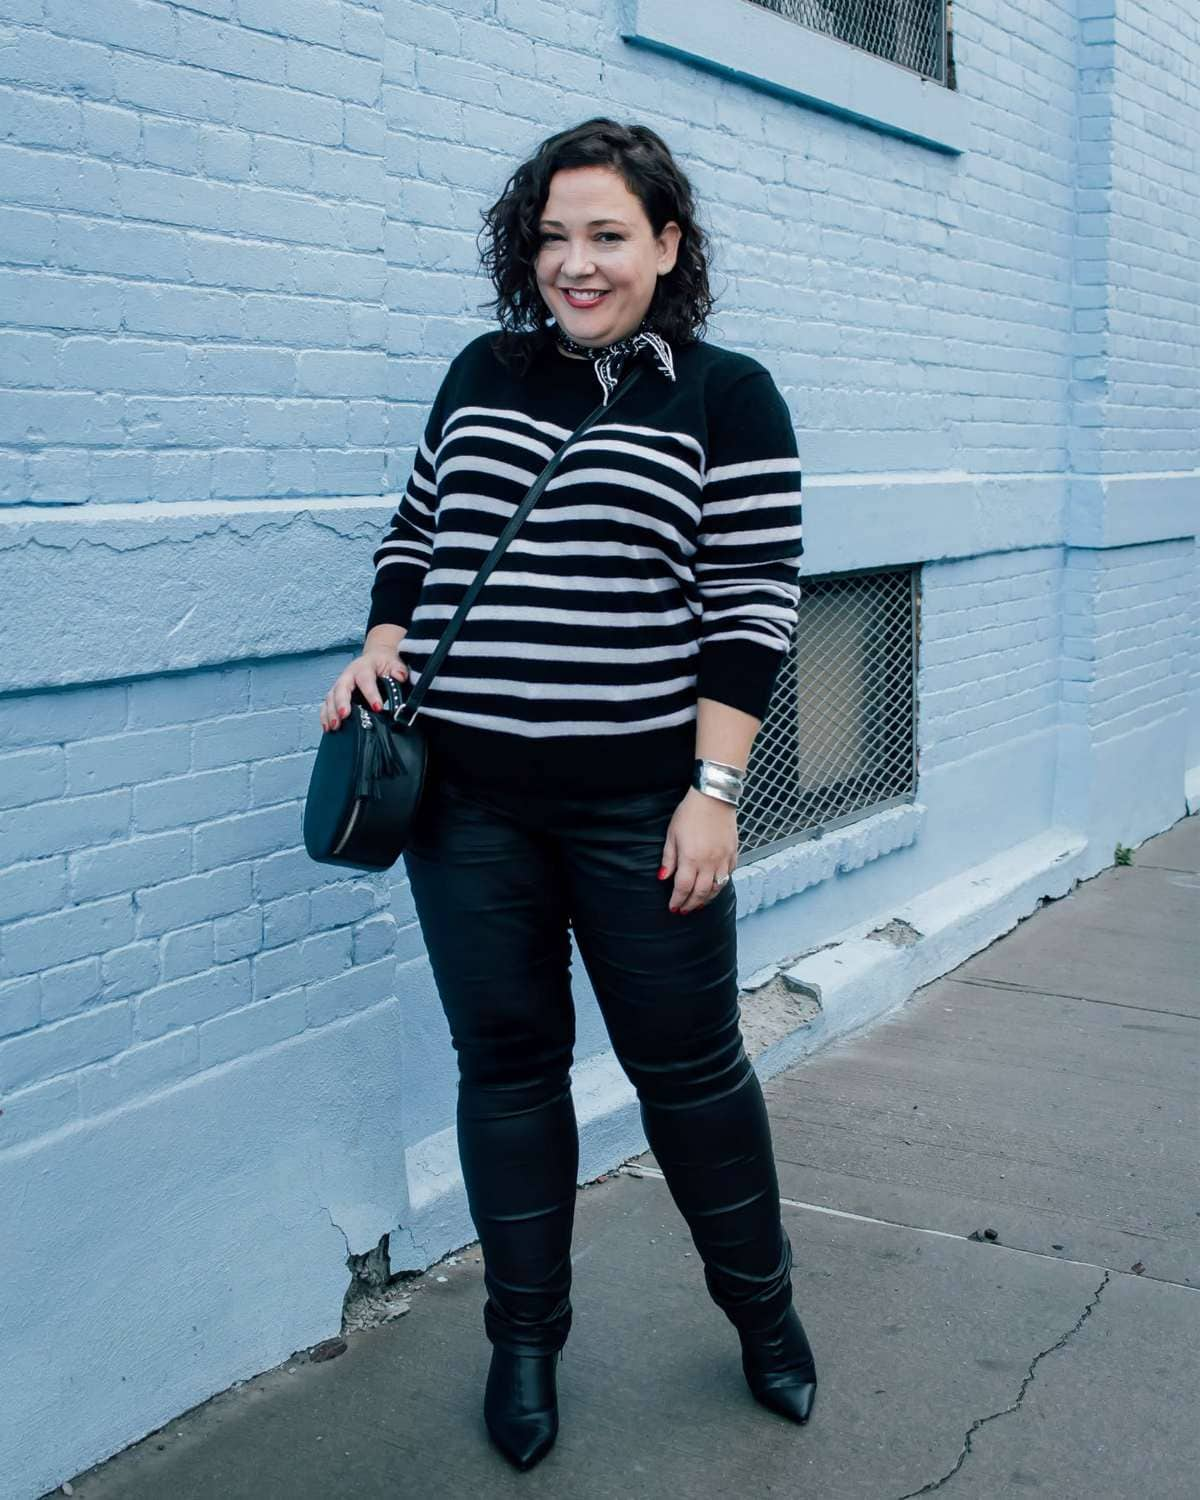 ASOS cashmere breton sweater in black and white stripes